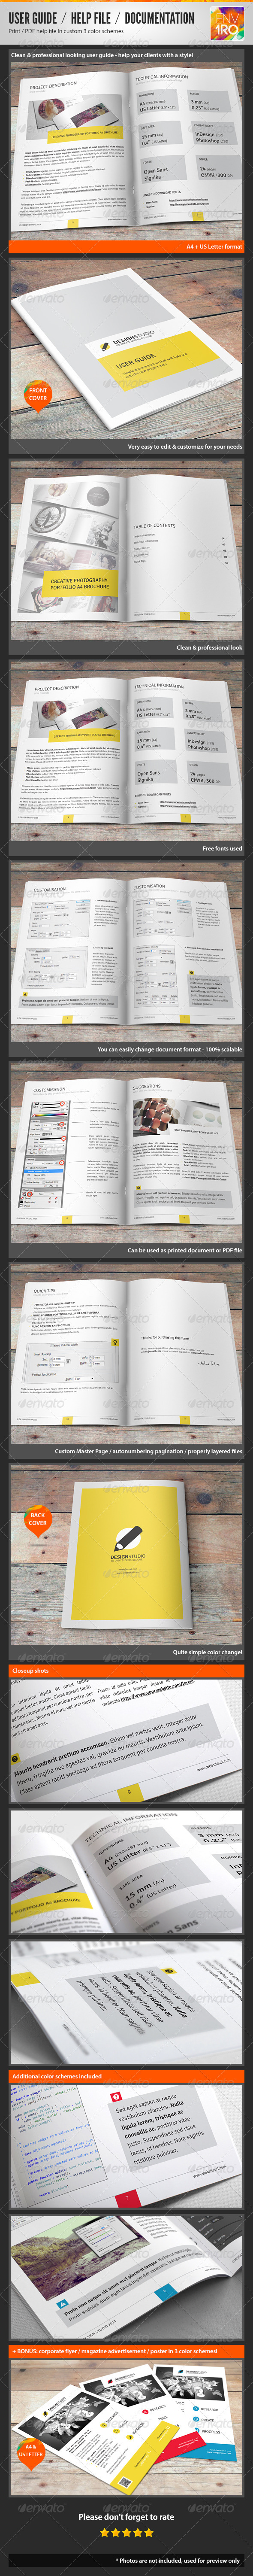 Guide Templates Help File  Illustrated Documentation  User Guide  Indesign .